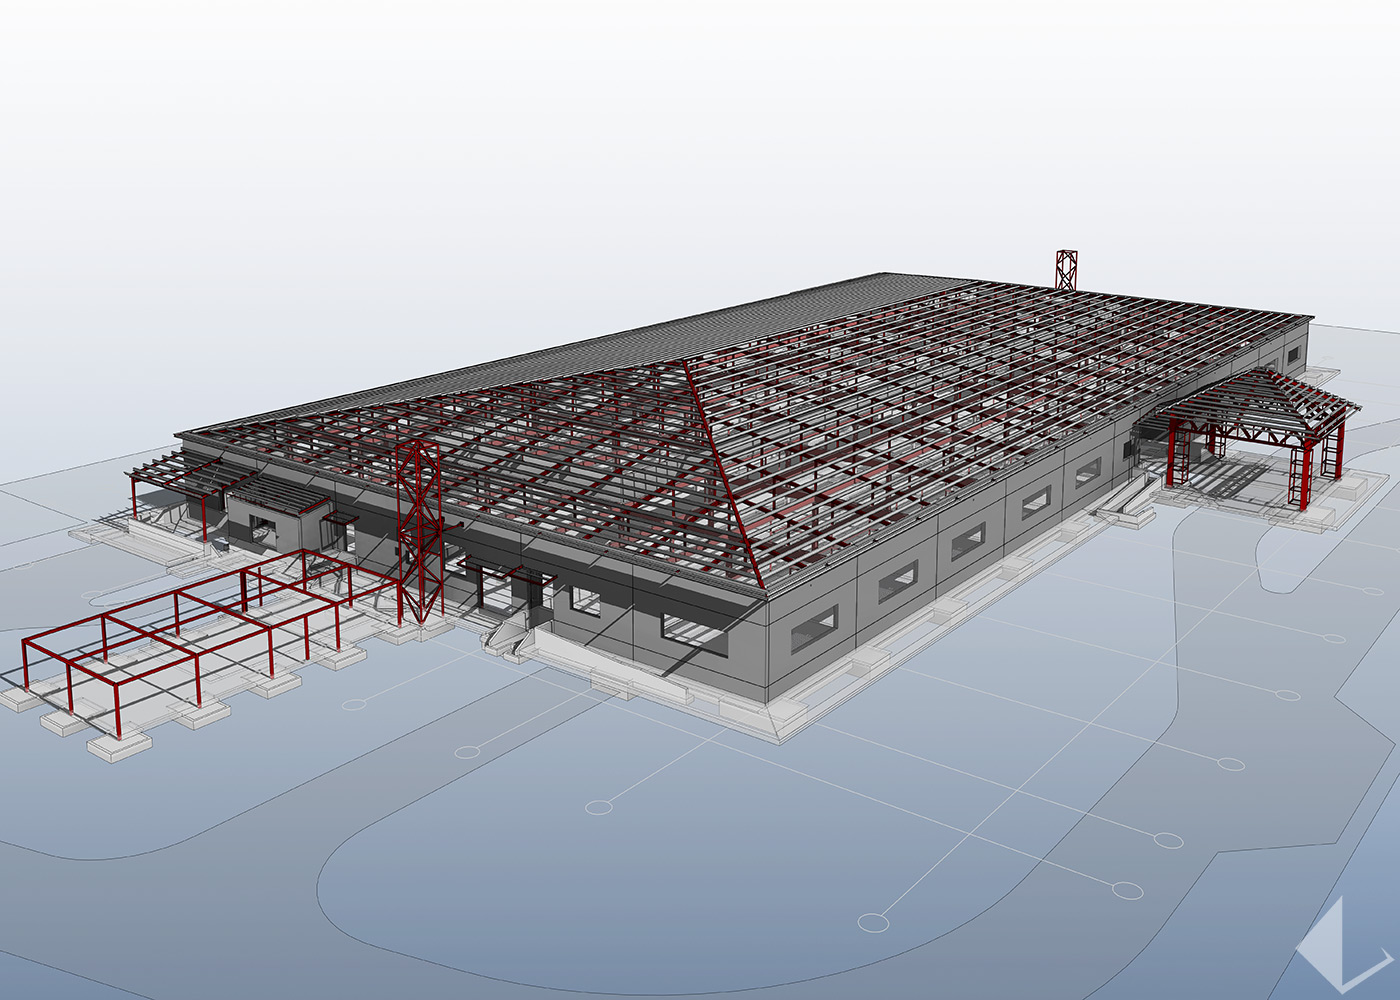 Wheatstone Project LNG Plant - Non Process Infrastructure Buildings : Image 4